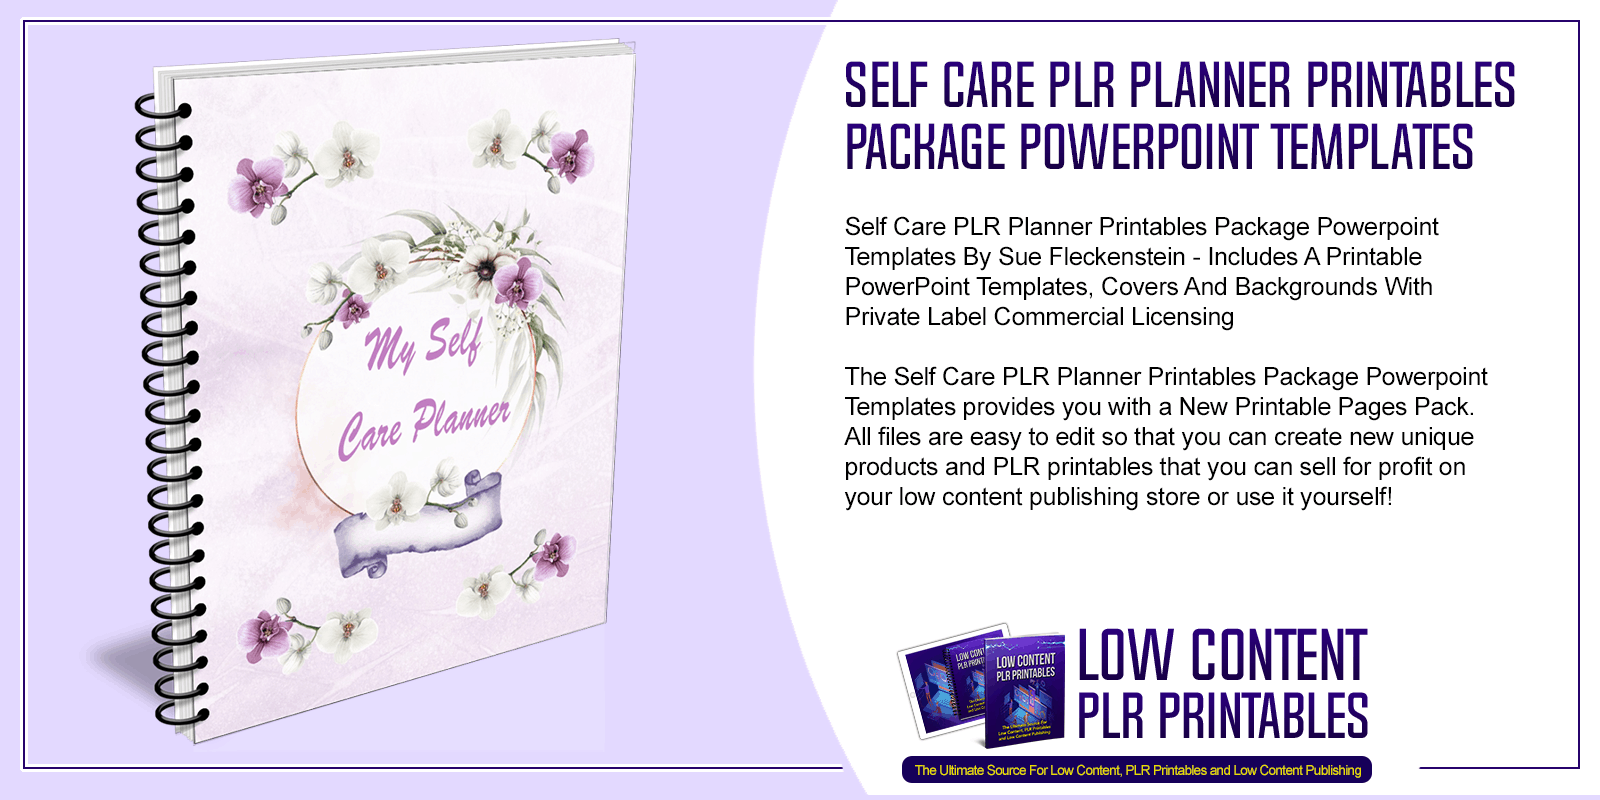 Self Care PLR Planner Printables Package Powerpoint Templates